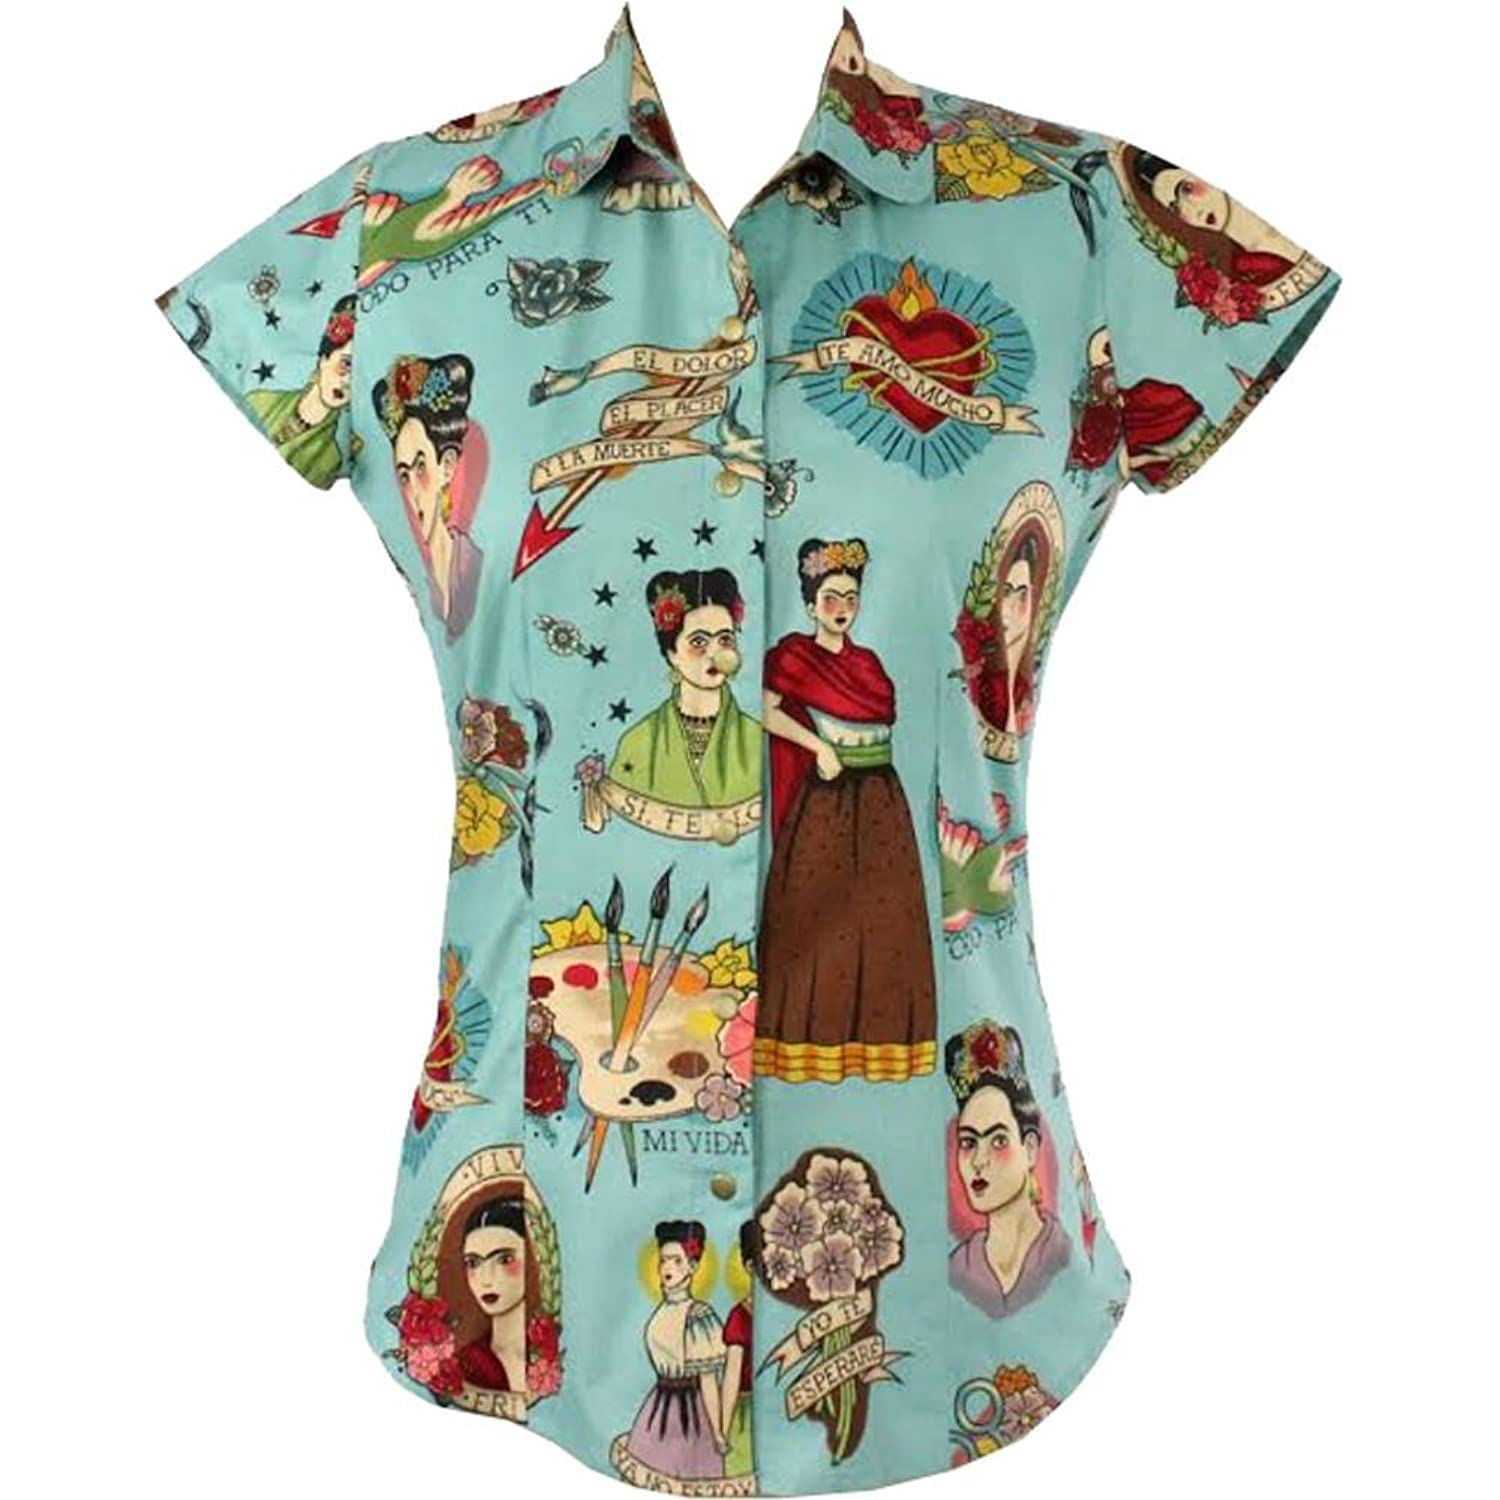 d978f662f Top 10 wholesale Rockabilly Inspired Clothing - Chinabrands.com